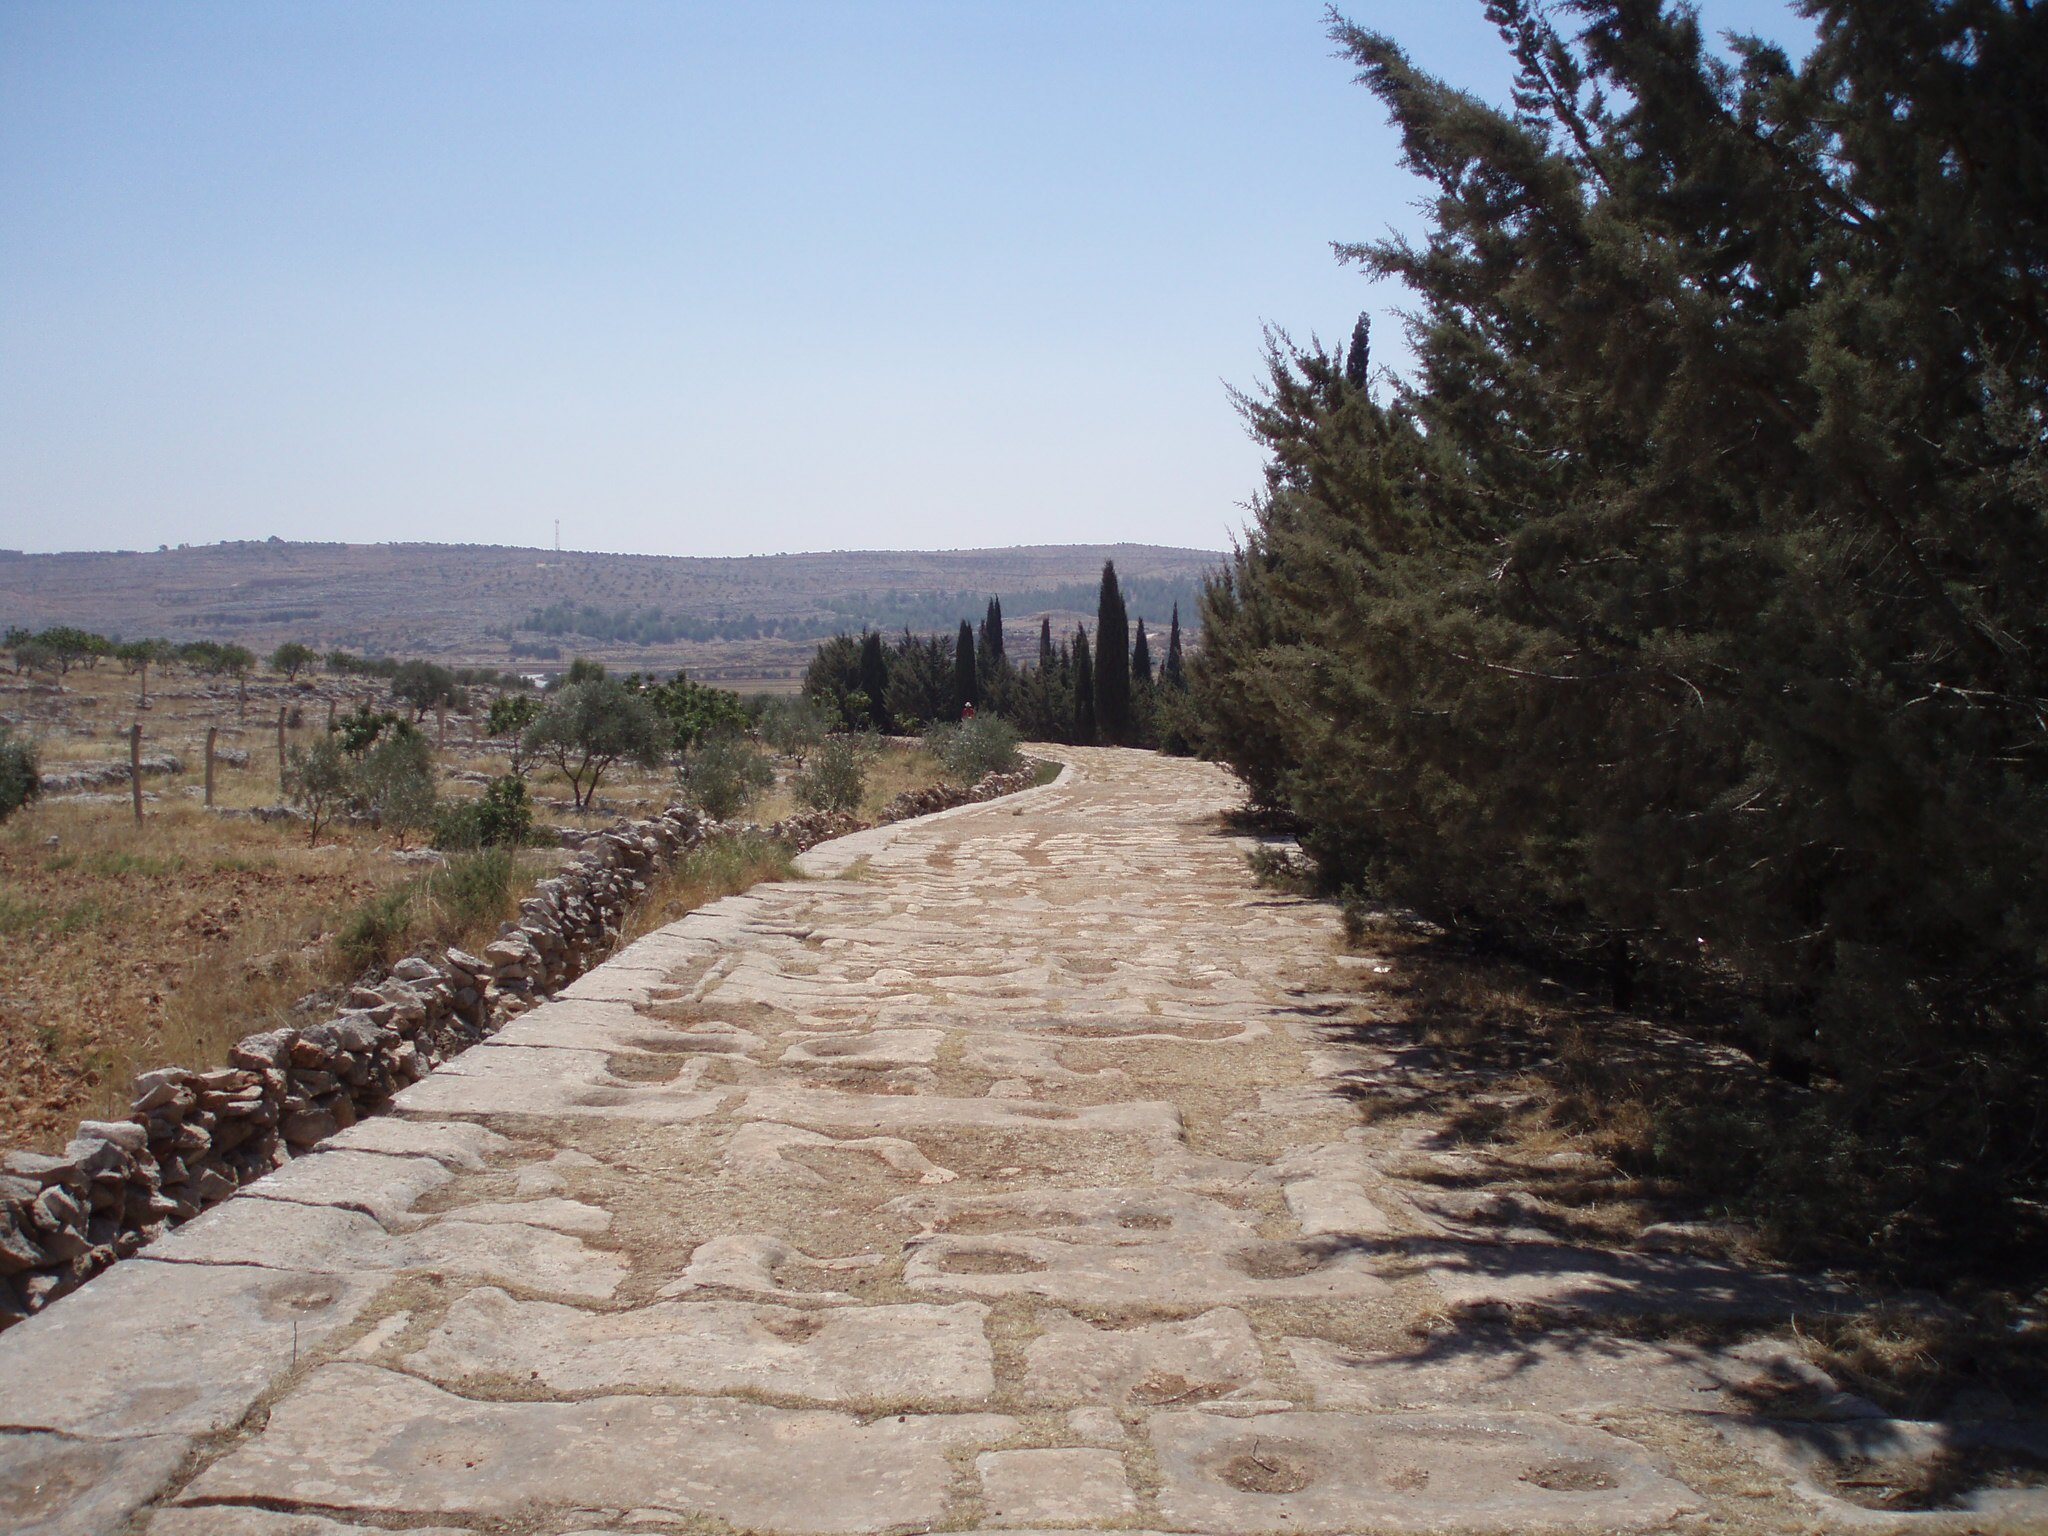 A stretch of paved Roman road still runs beside the main Aleppo-Turkey road, a testament to historic trade routes (Photo by: Diana Darke)